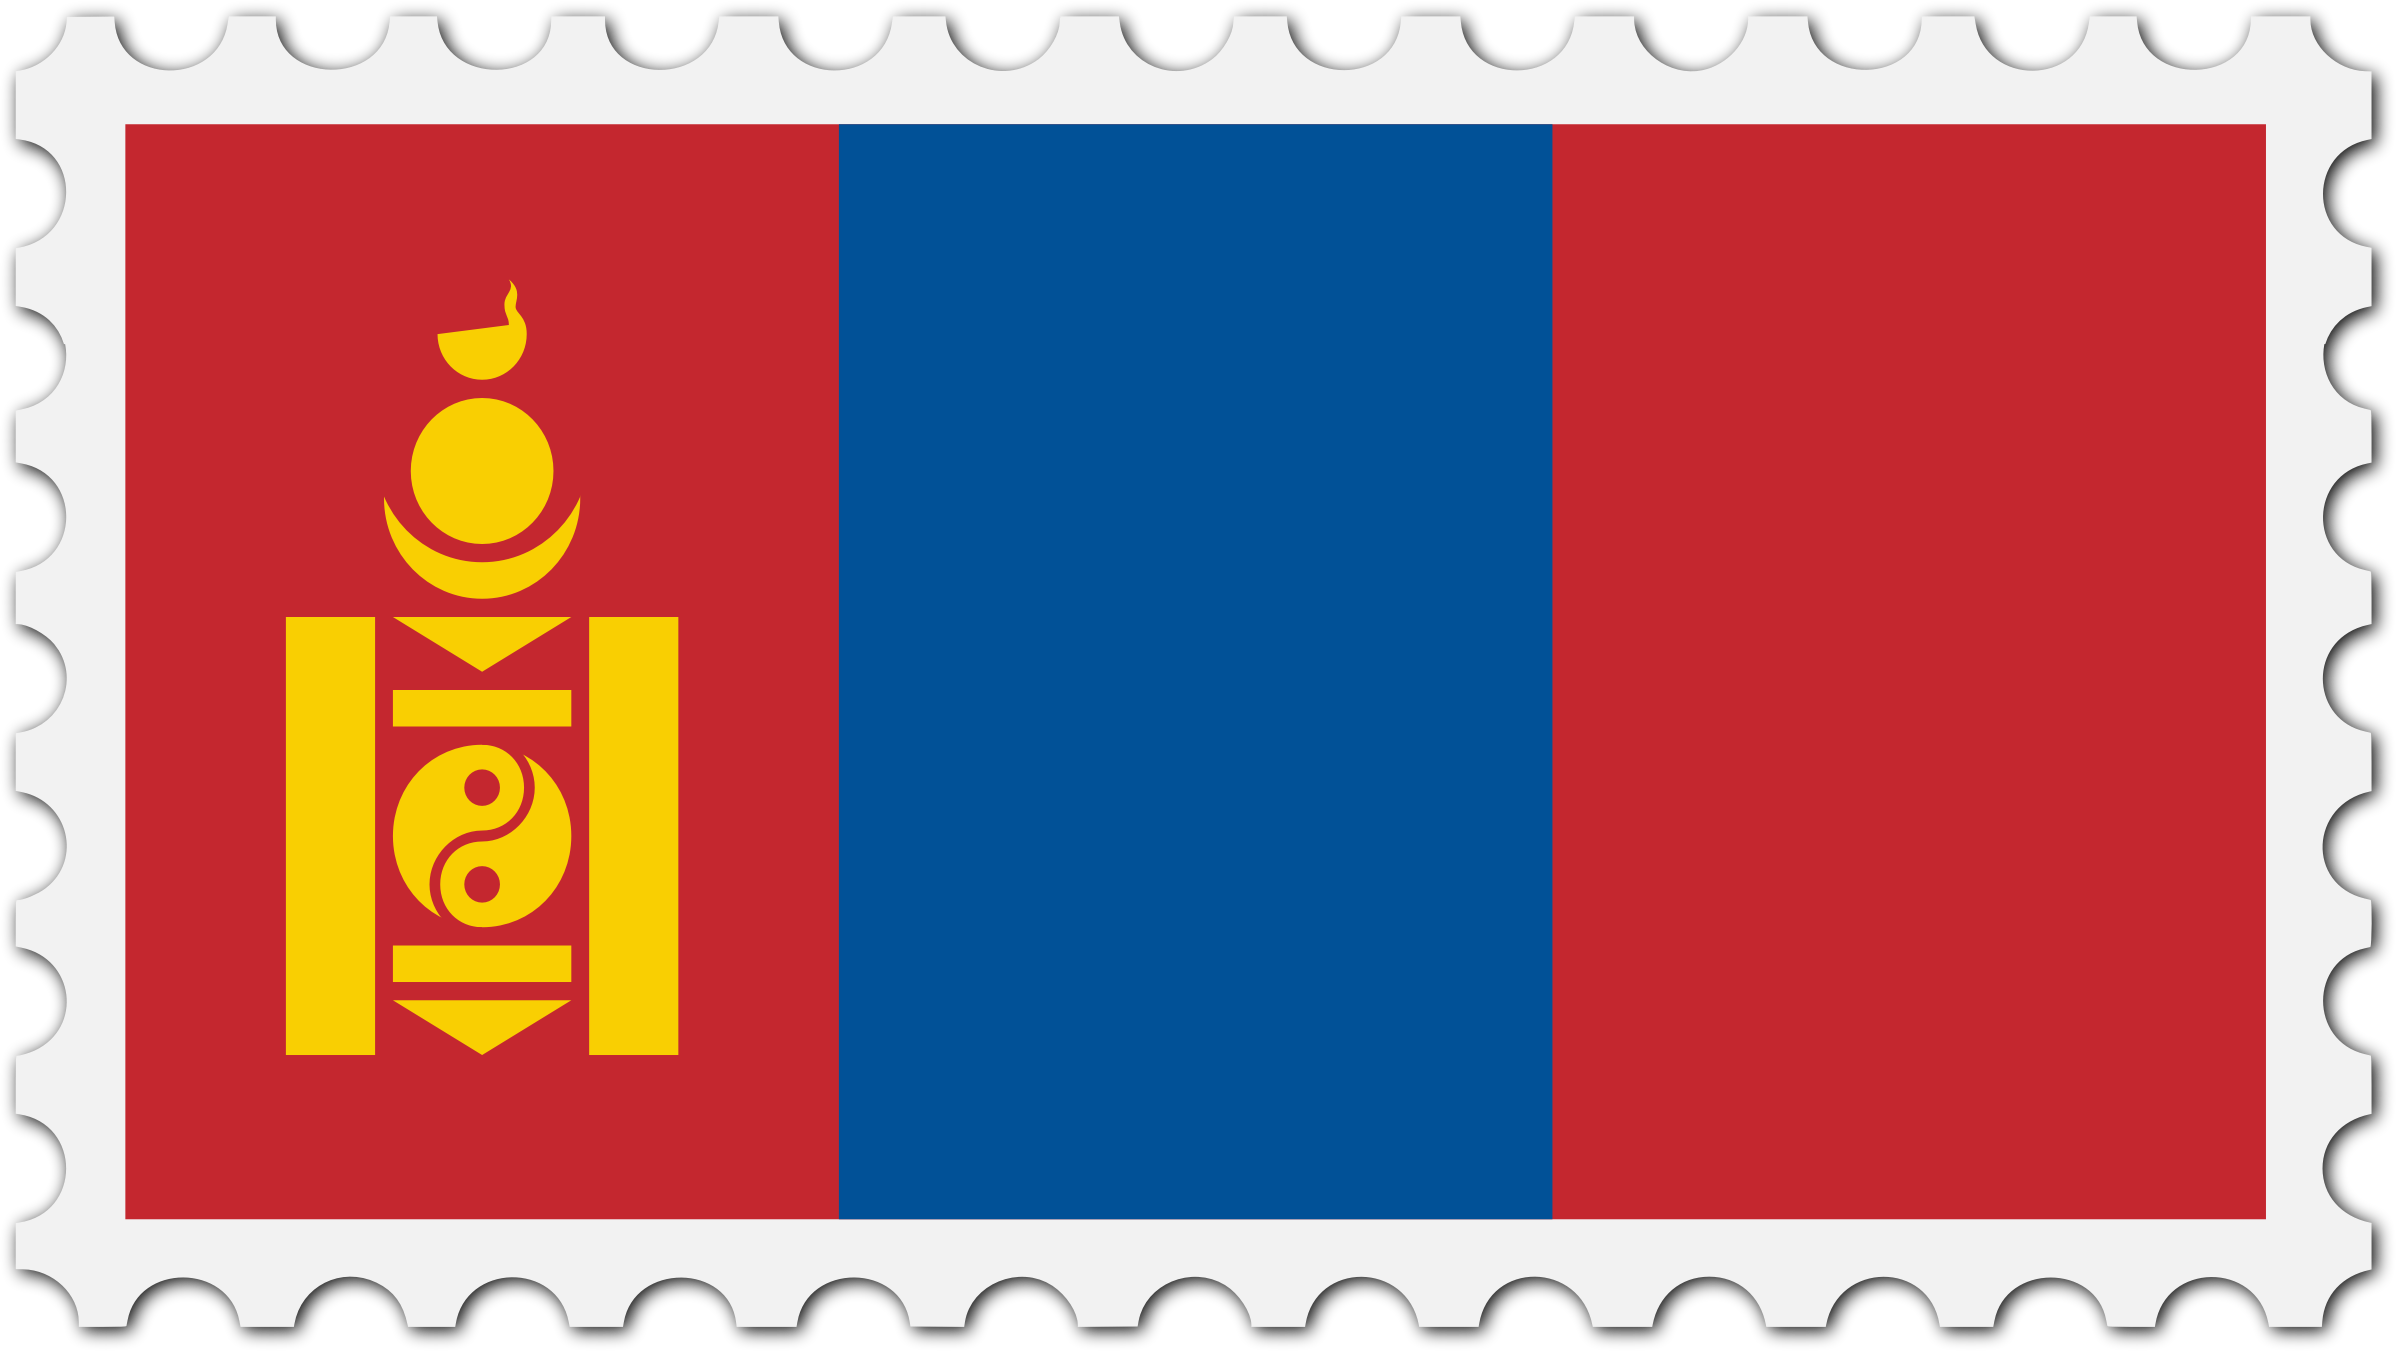 Mongolia flag stamp by Firkin